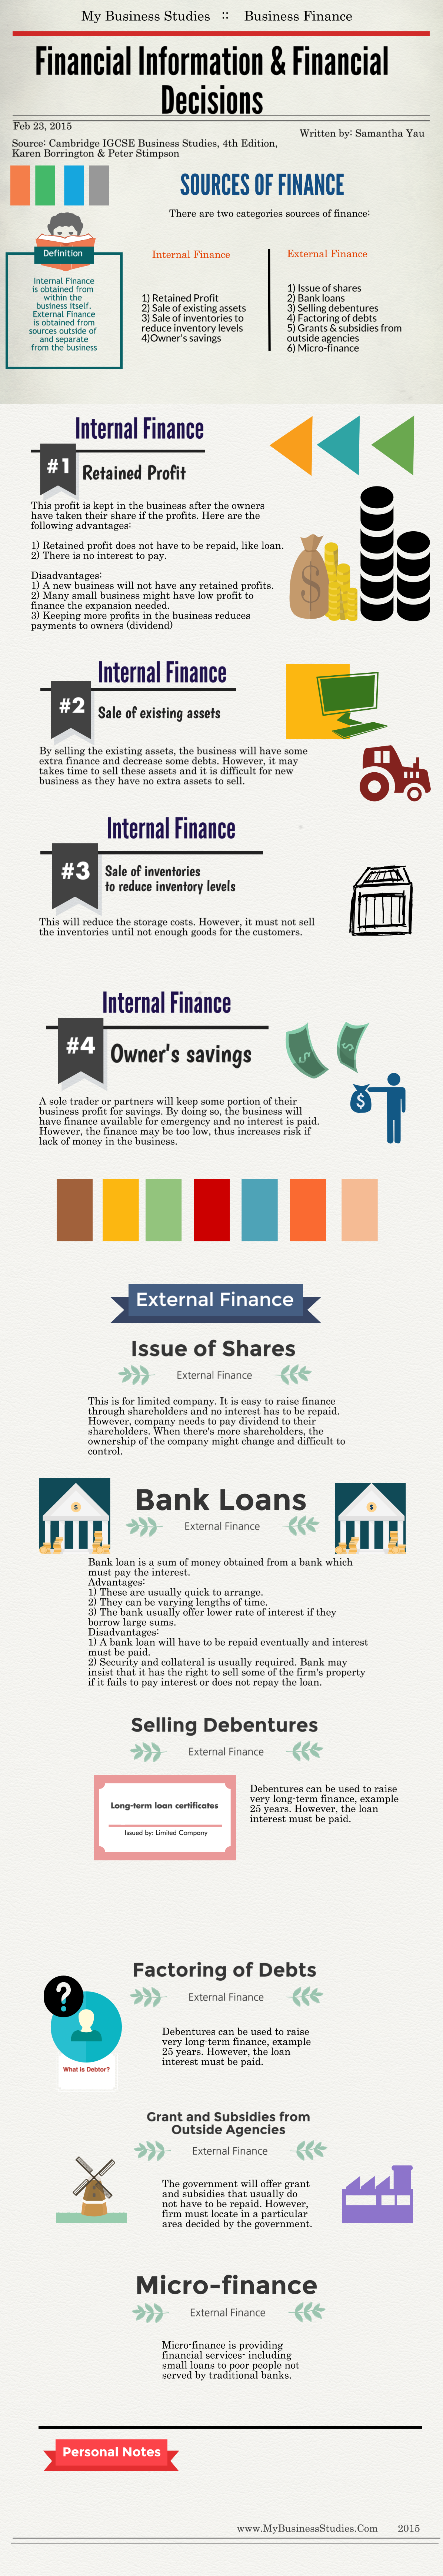 Sources of finance, IGCSE Business Studies,, Notes | Business ...